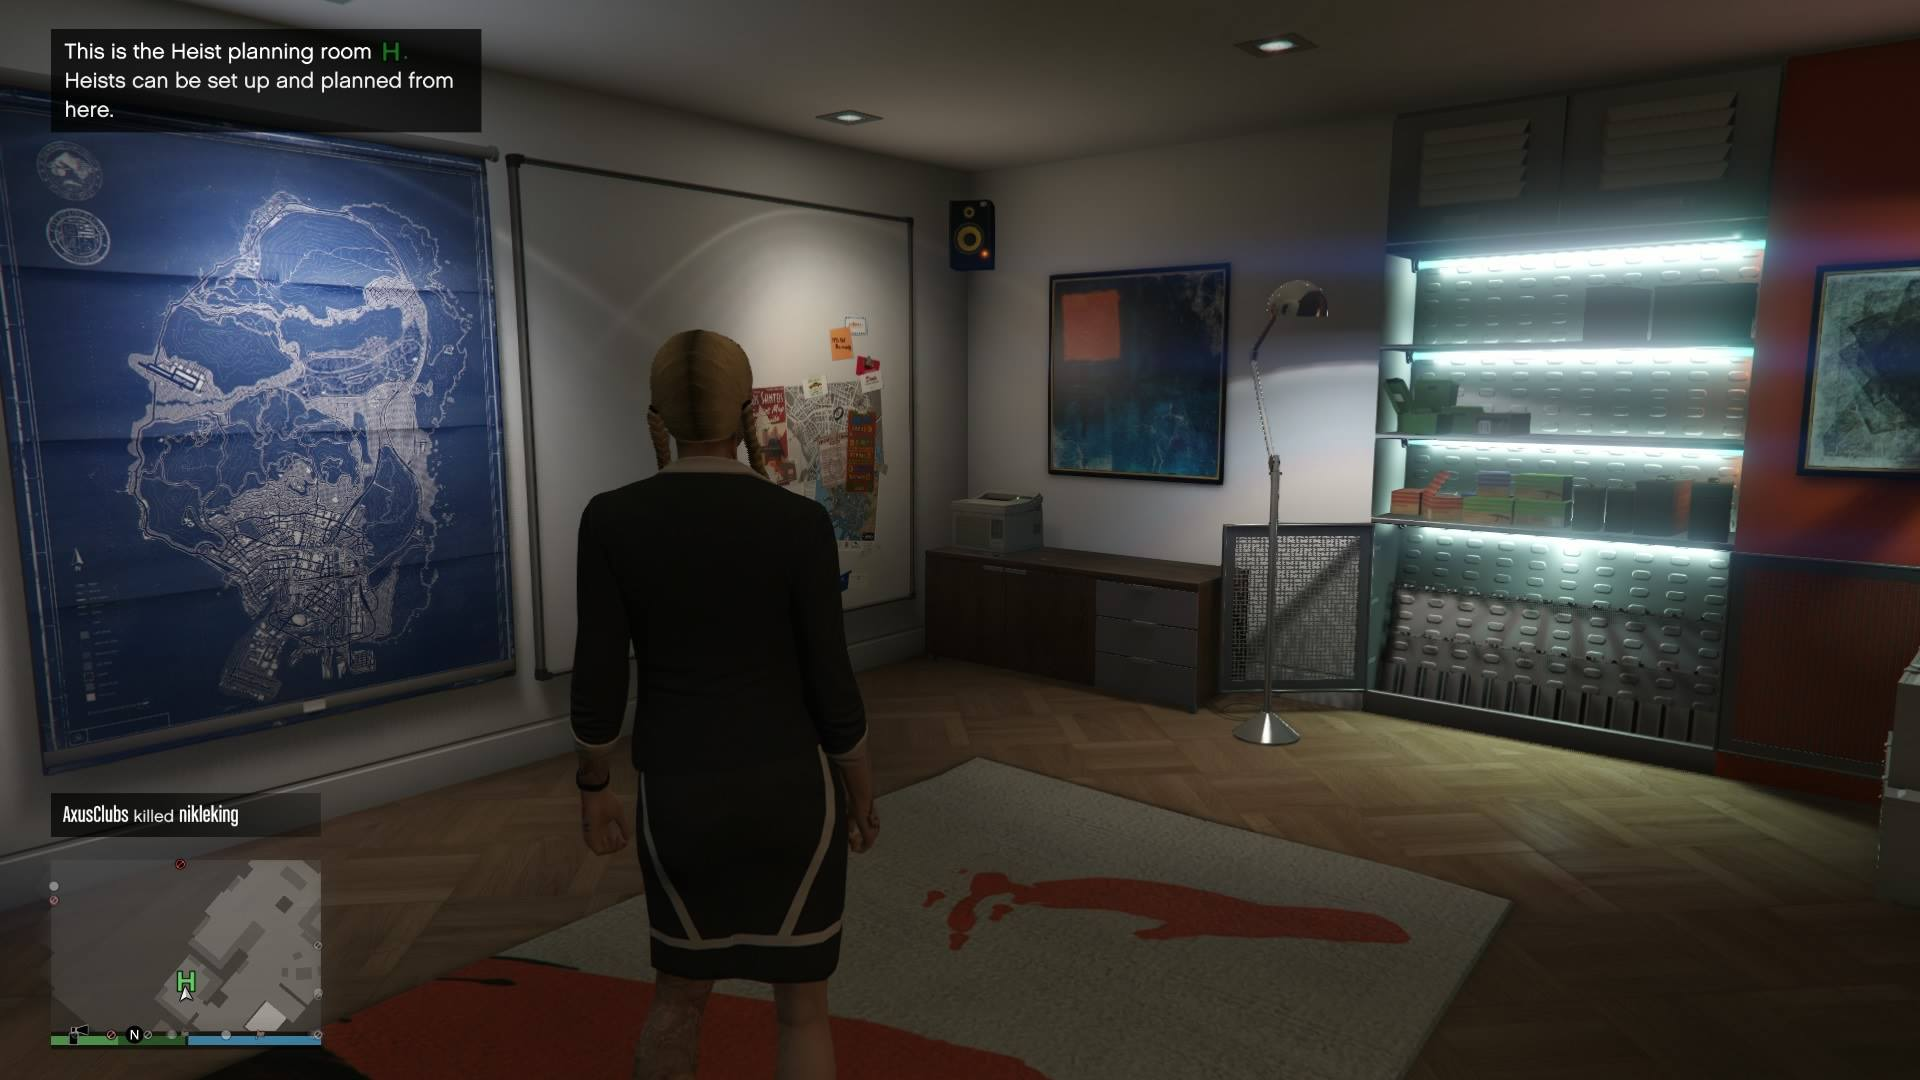 Gta 5 online heists guide the fleeca job vg247 for Online bedroom planner